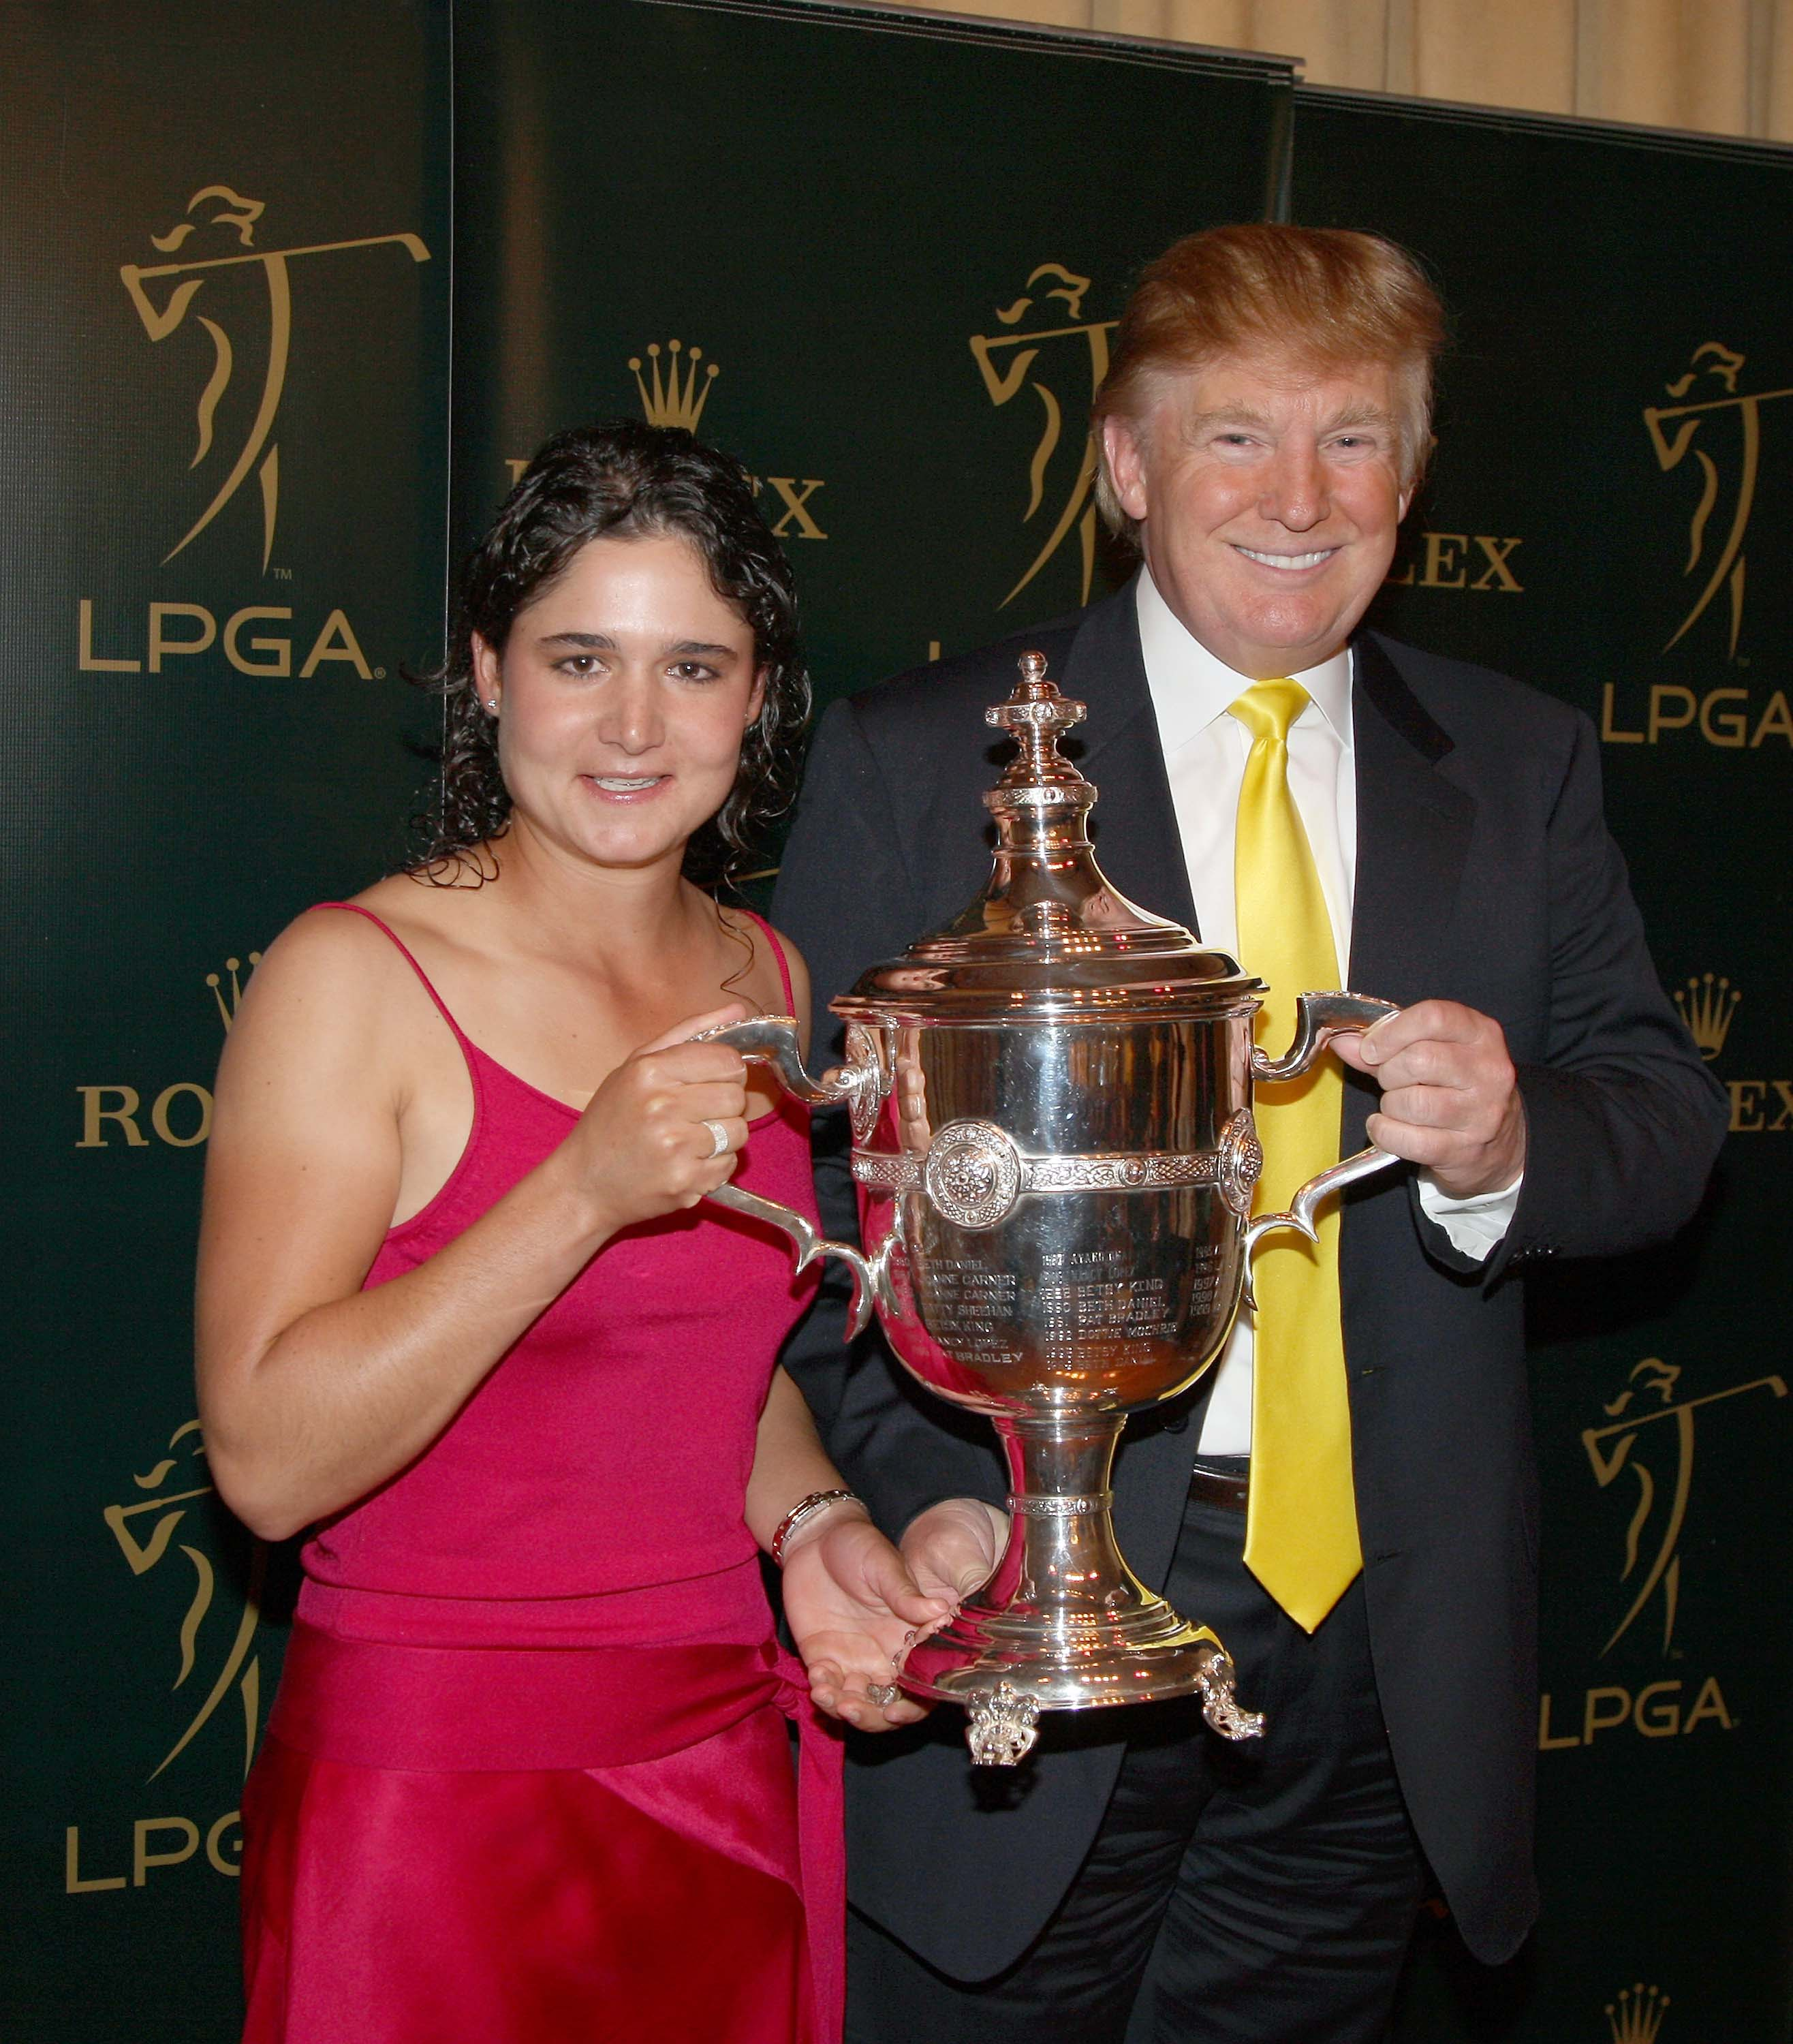 Lorena Ochoa and Donald Trump